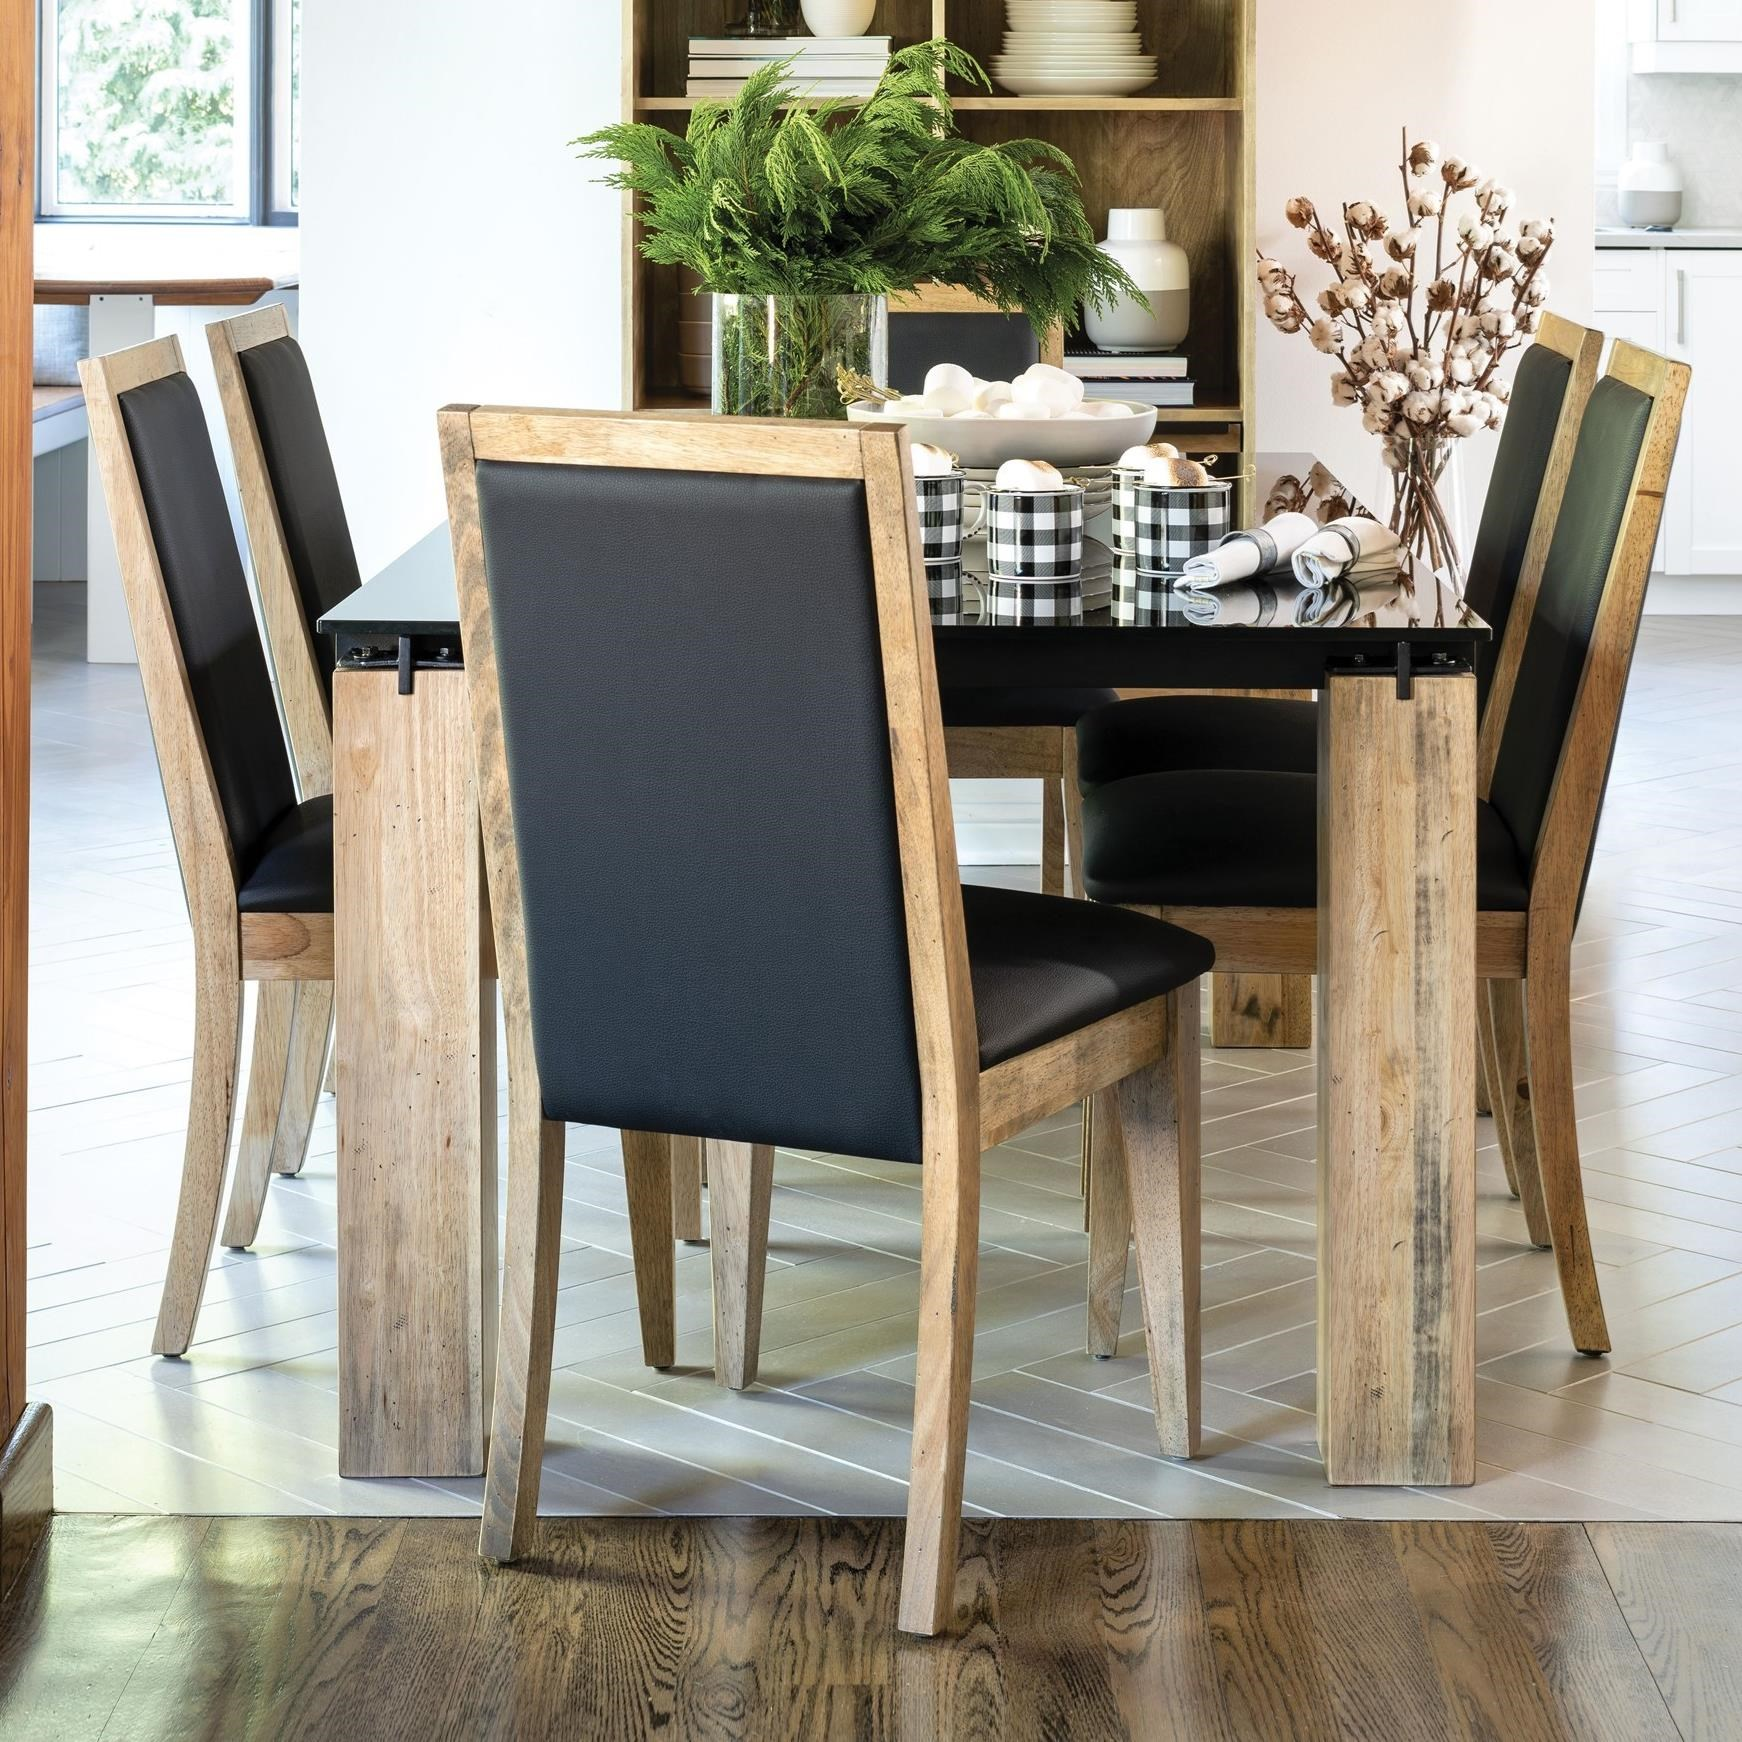 East Side Customizable Glass Top Dining Table Set by Canadel at Dinette Depot